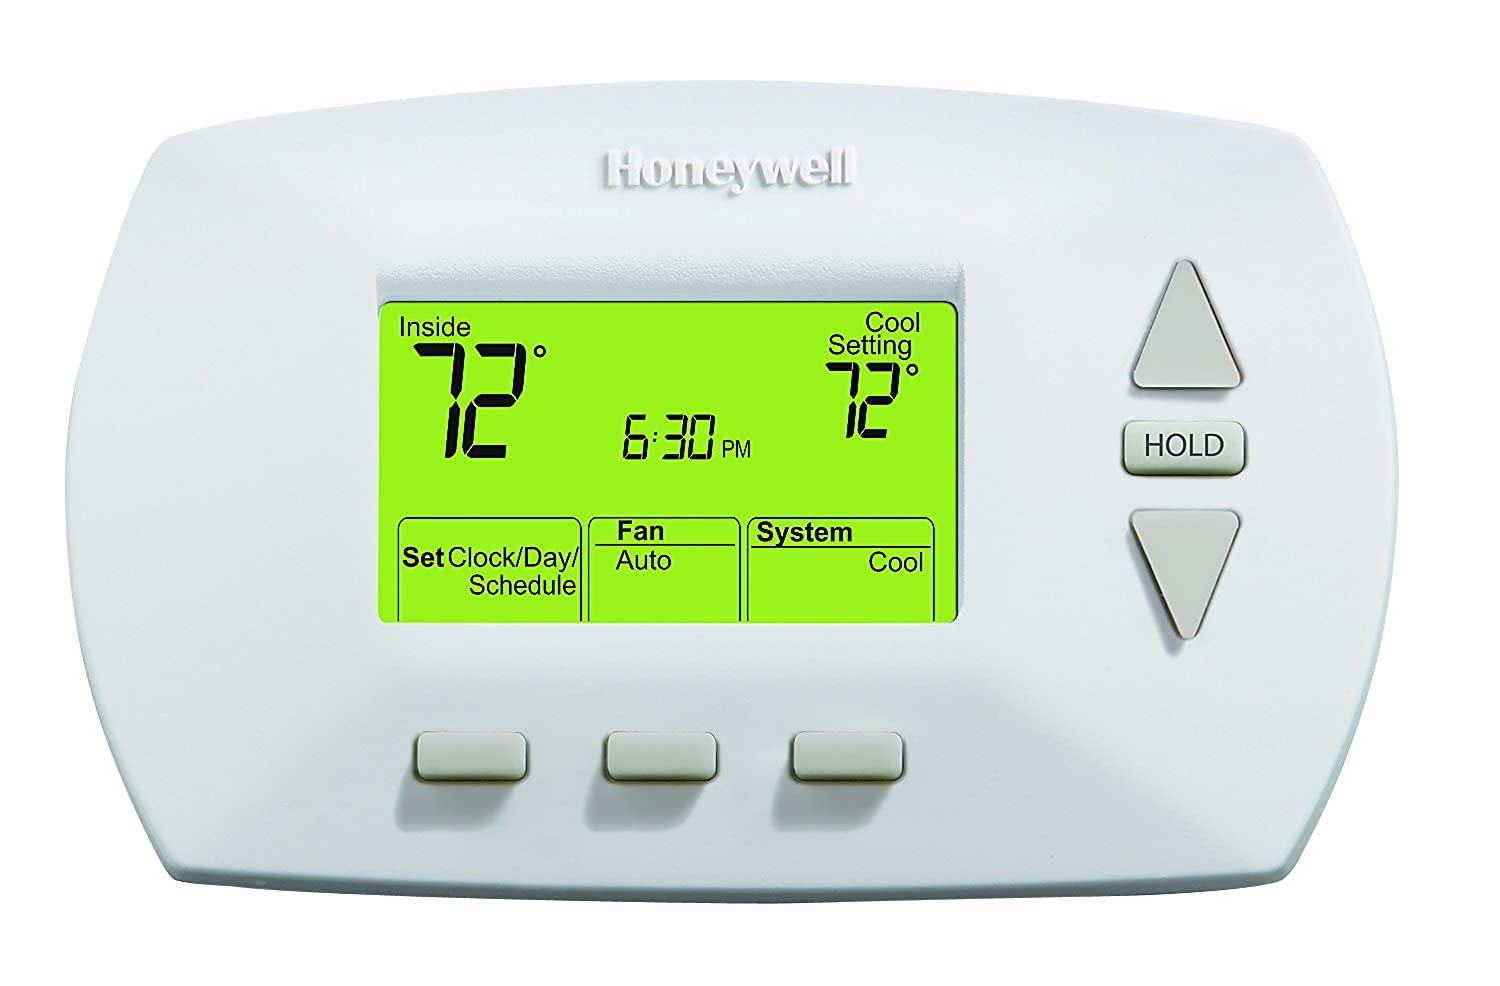 Honeywell Th6110d1005 Installation Manual User Guide That Thermostat Product Instruction Amazon Com Rth6450d1009 E1 5 1 Day Programmable Rh